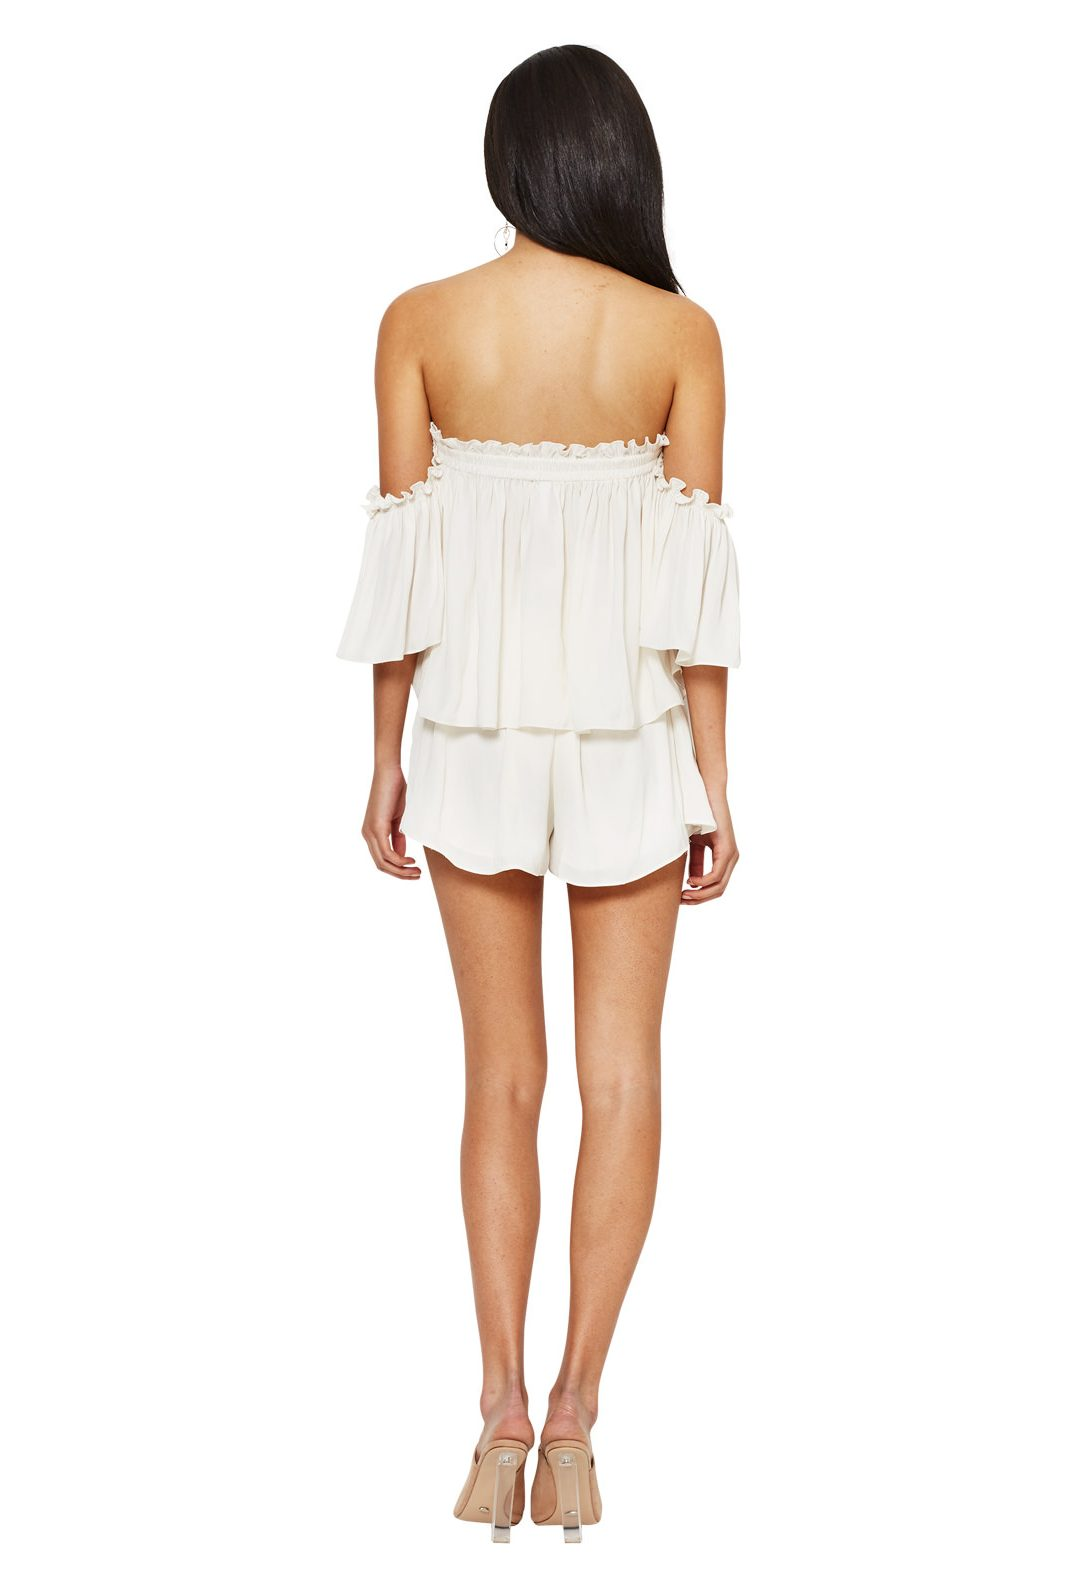 OCEAN EYES PLAYSUIT – IVORY (3)